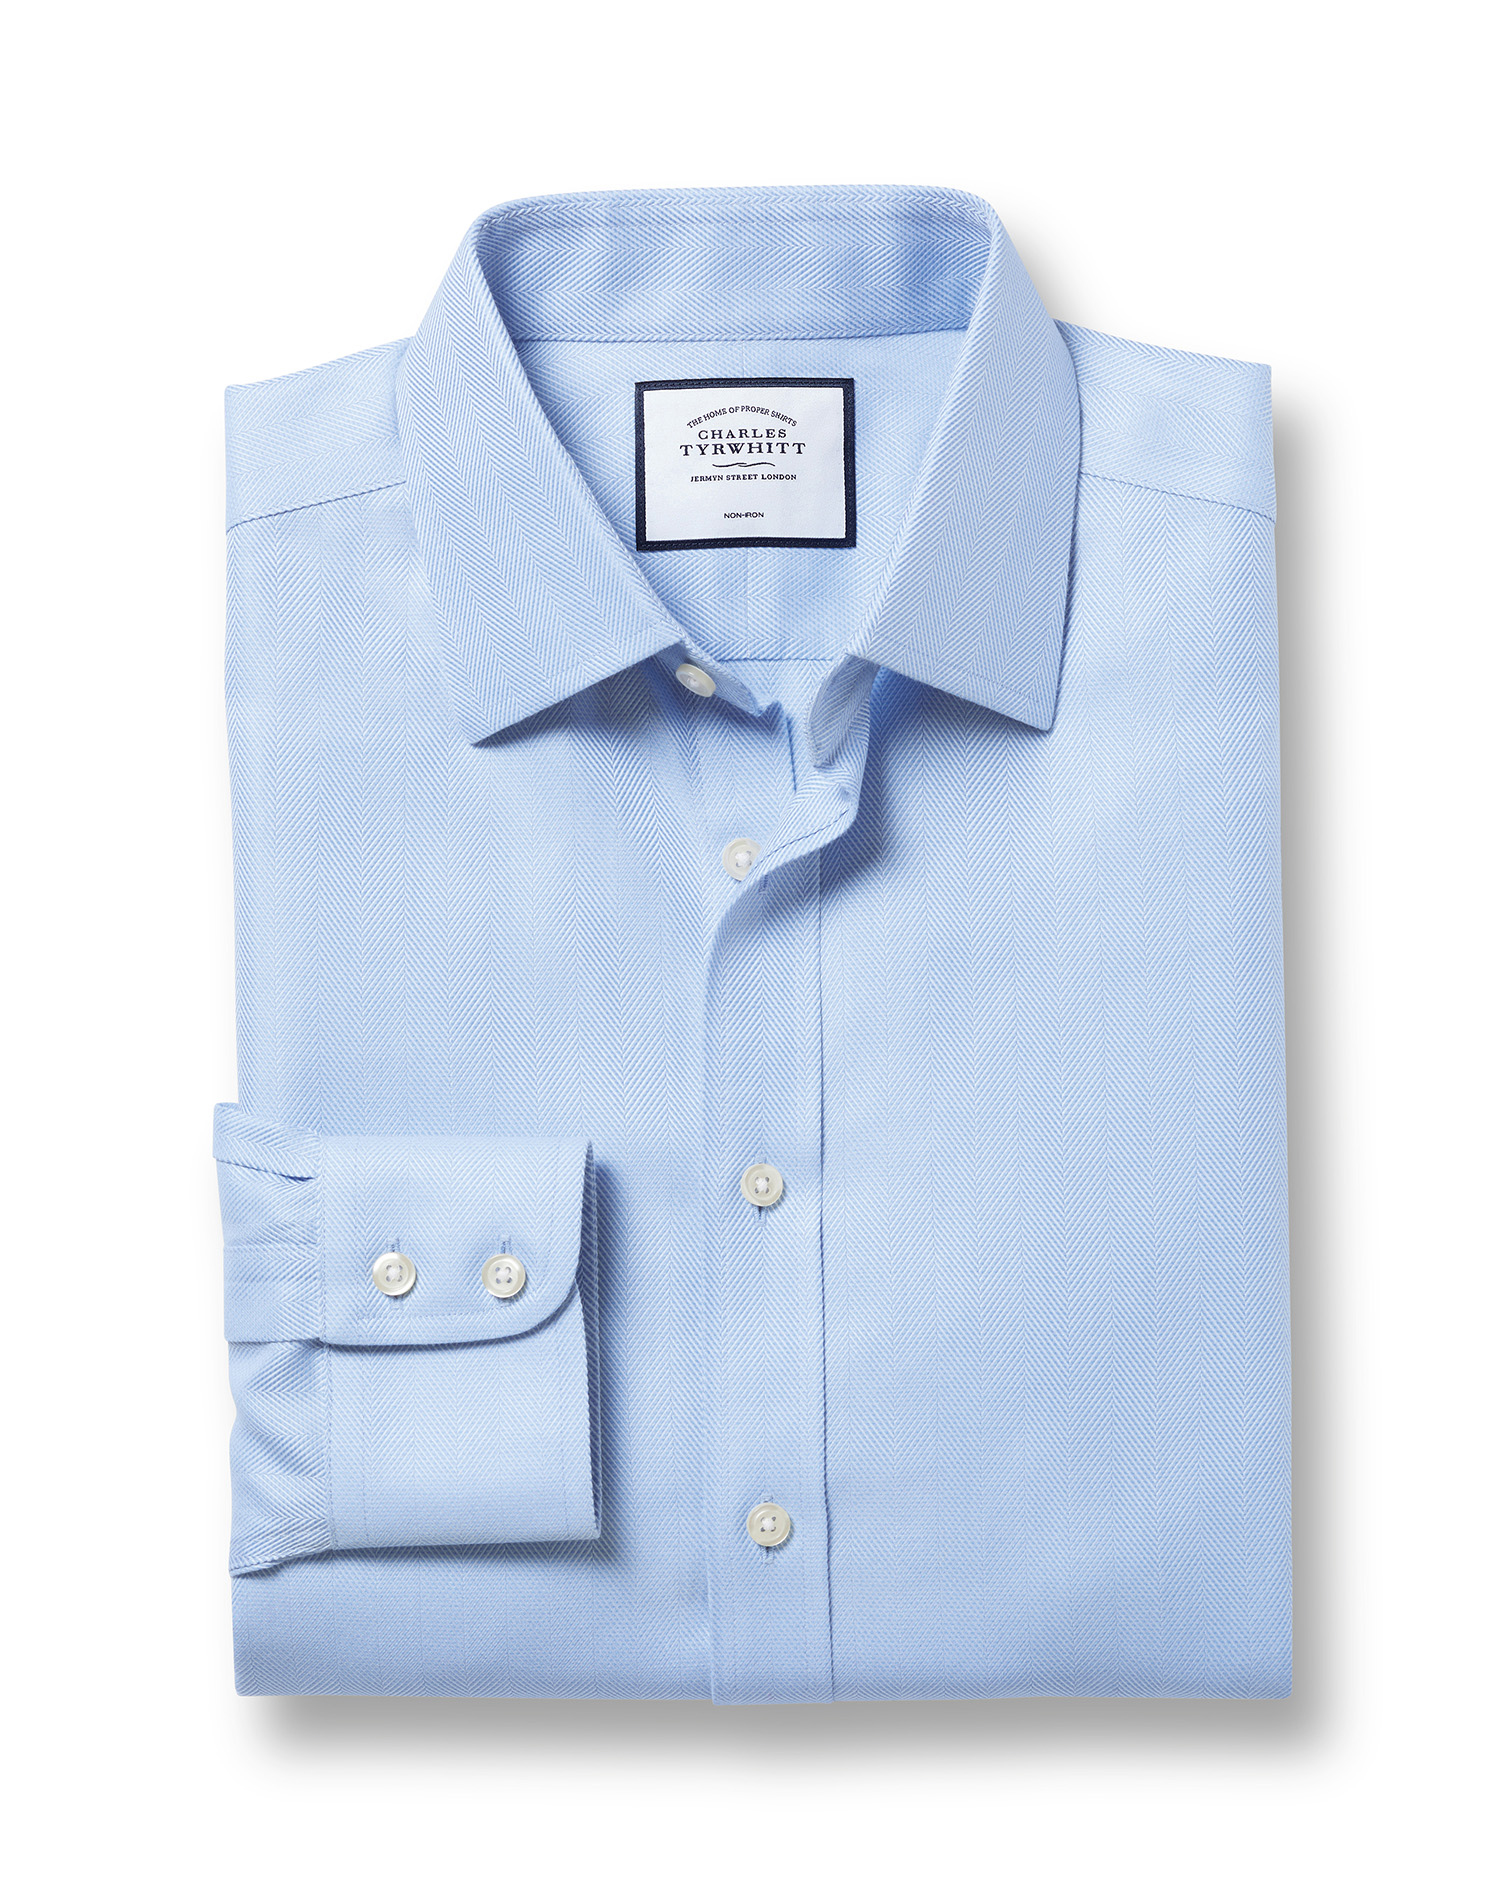 Classic Fit Non-Iron Sky Blue Herringbone Cotton Formal Shirt Double Cuff Size 15.5/34 by Charles Ty